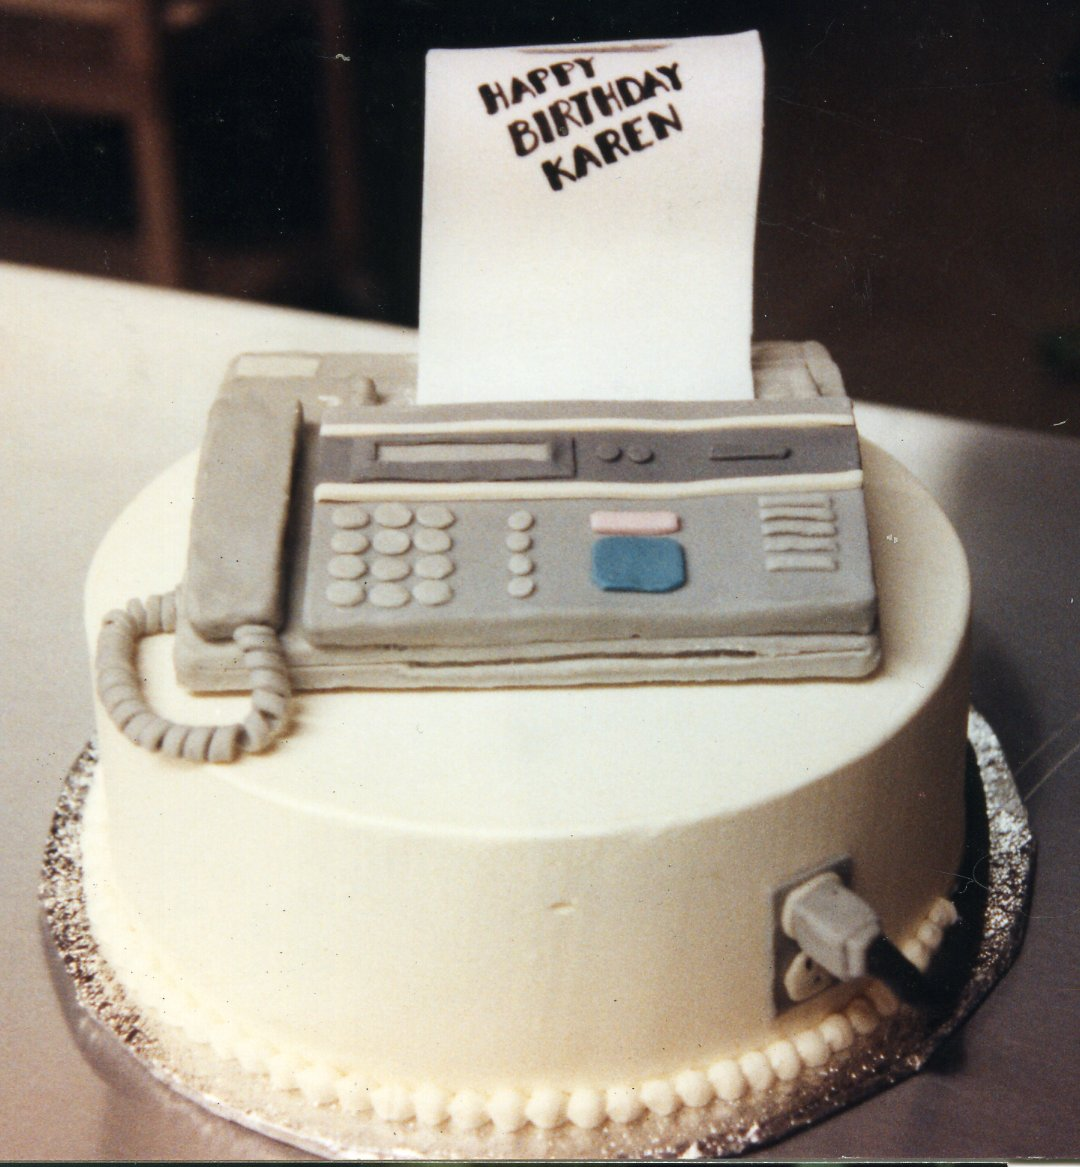 Fax machine birthday cake